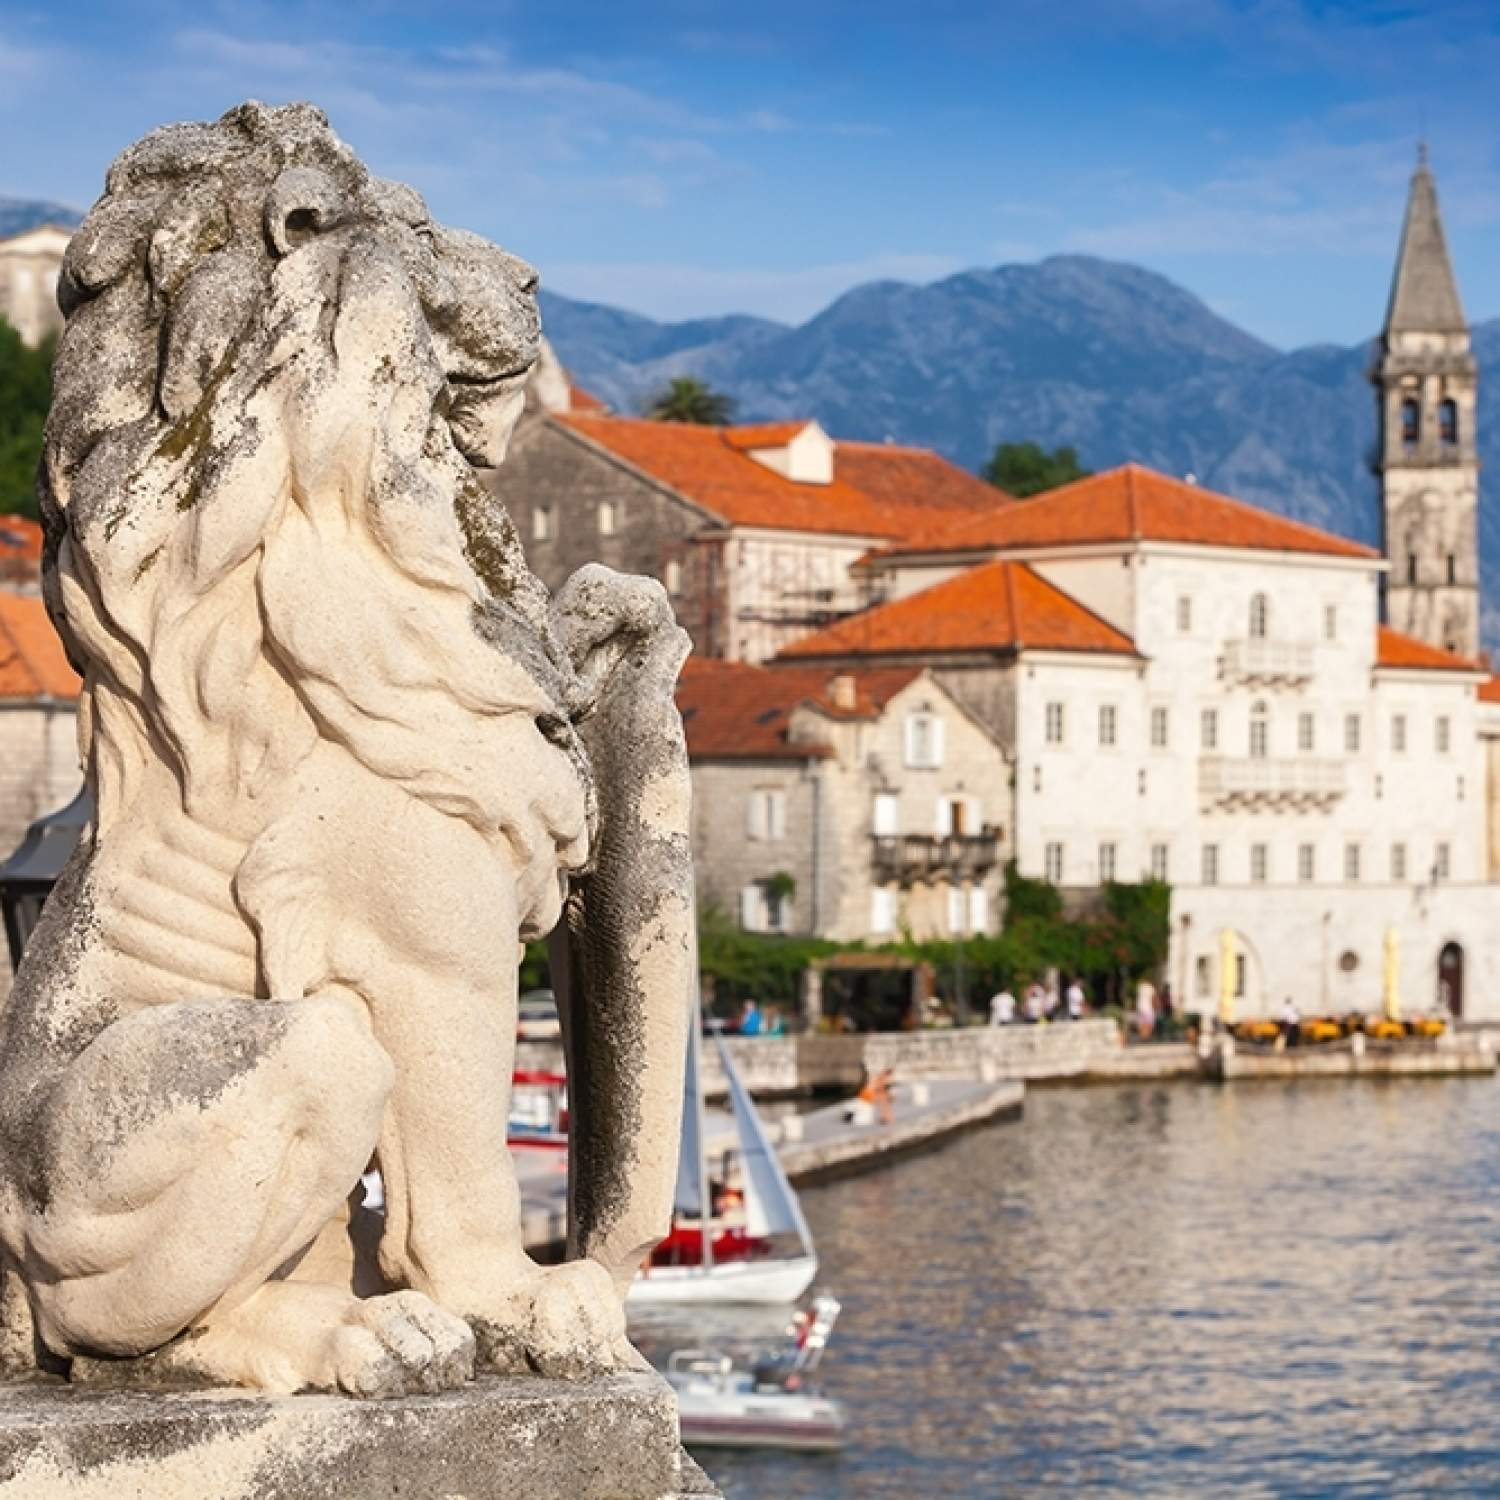 Ancient-stone-lion-statue-in-Perast-town-Bay-of-Kotor-Montenegro